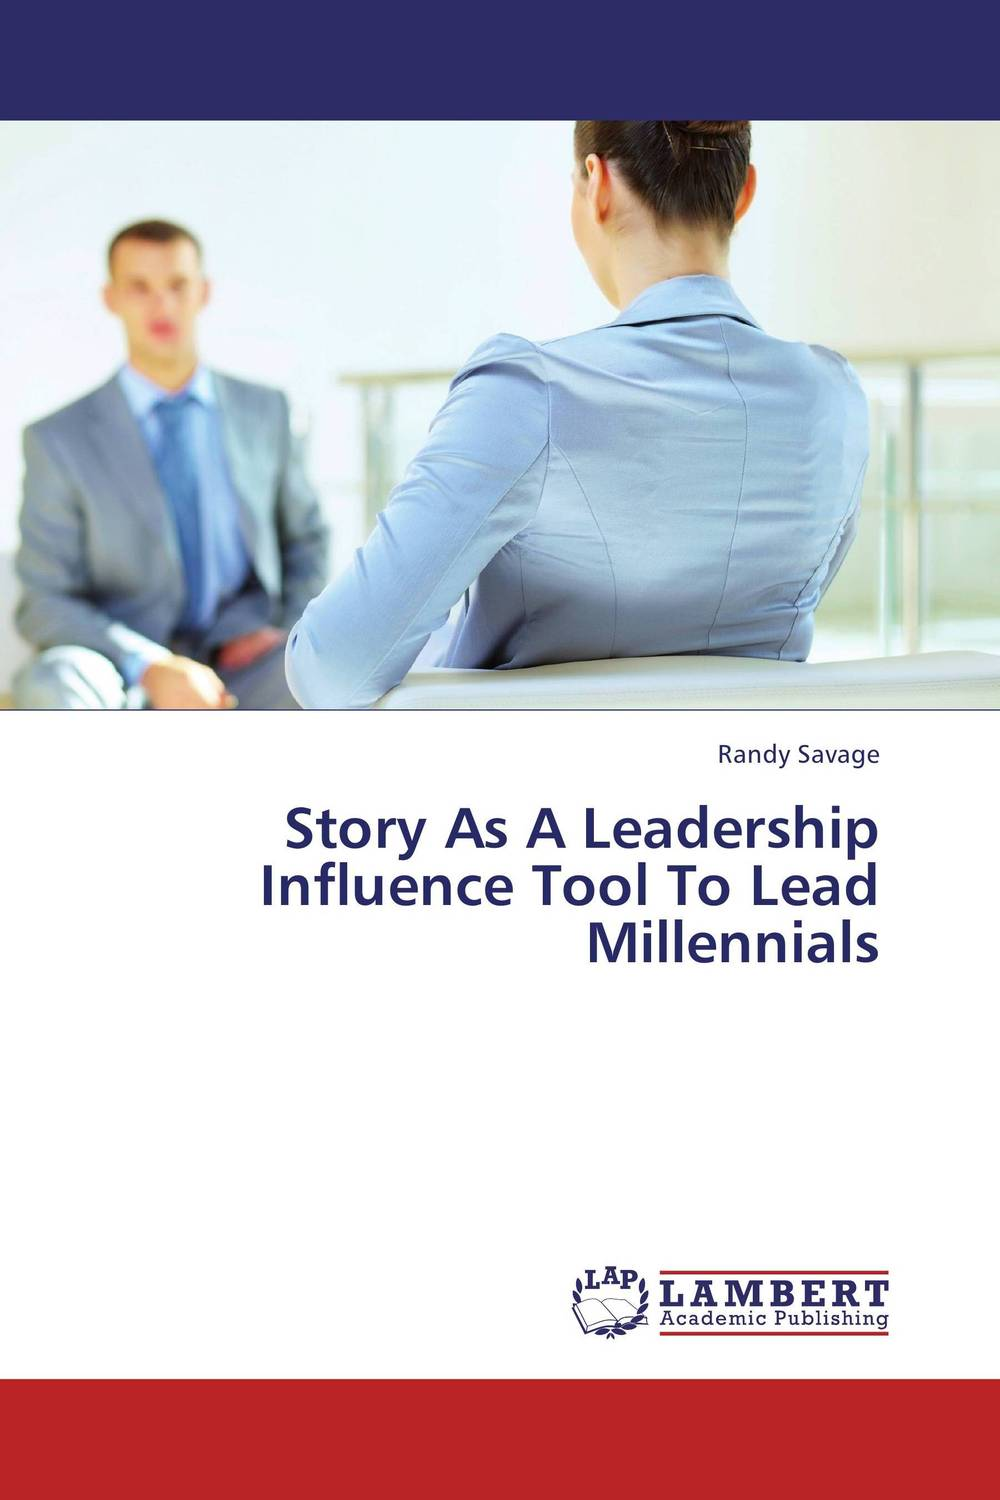 Story As A Leadership Influence Tool To Lead Millennials